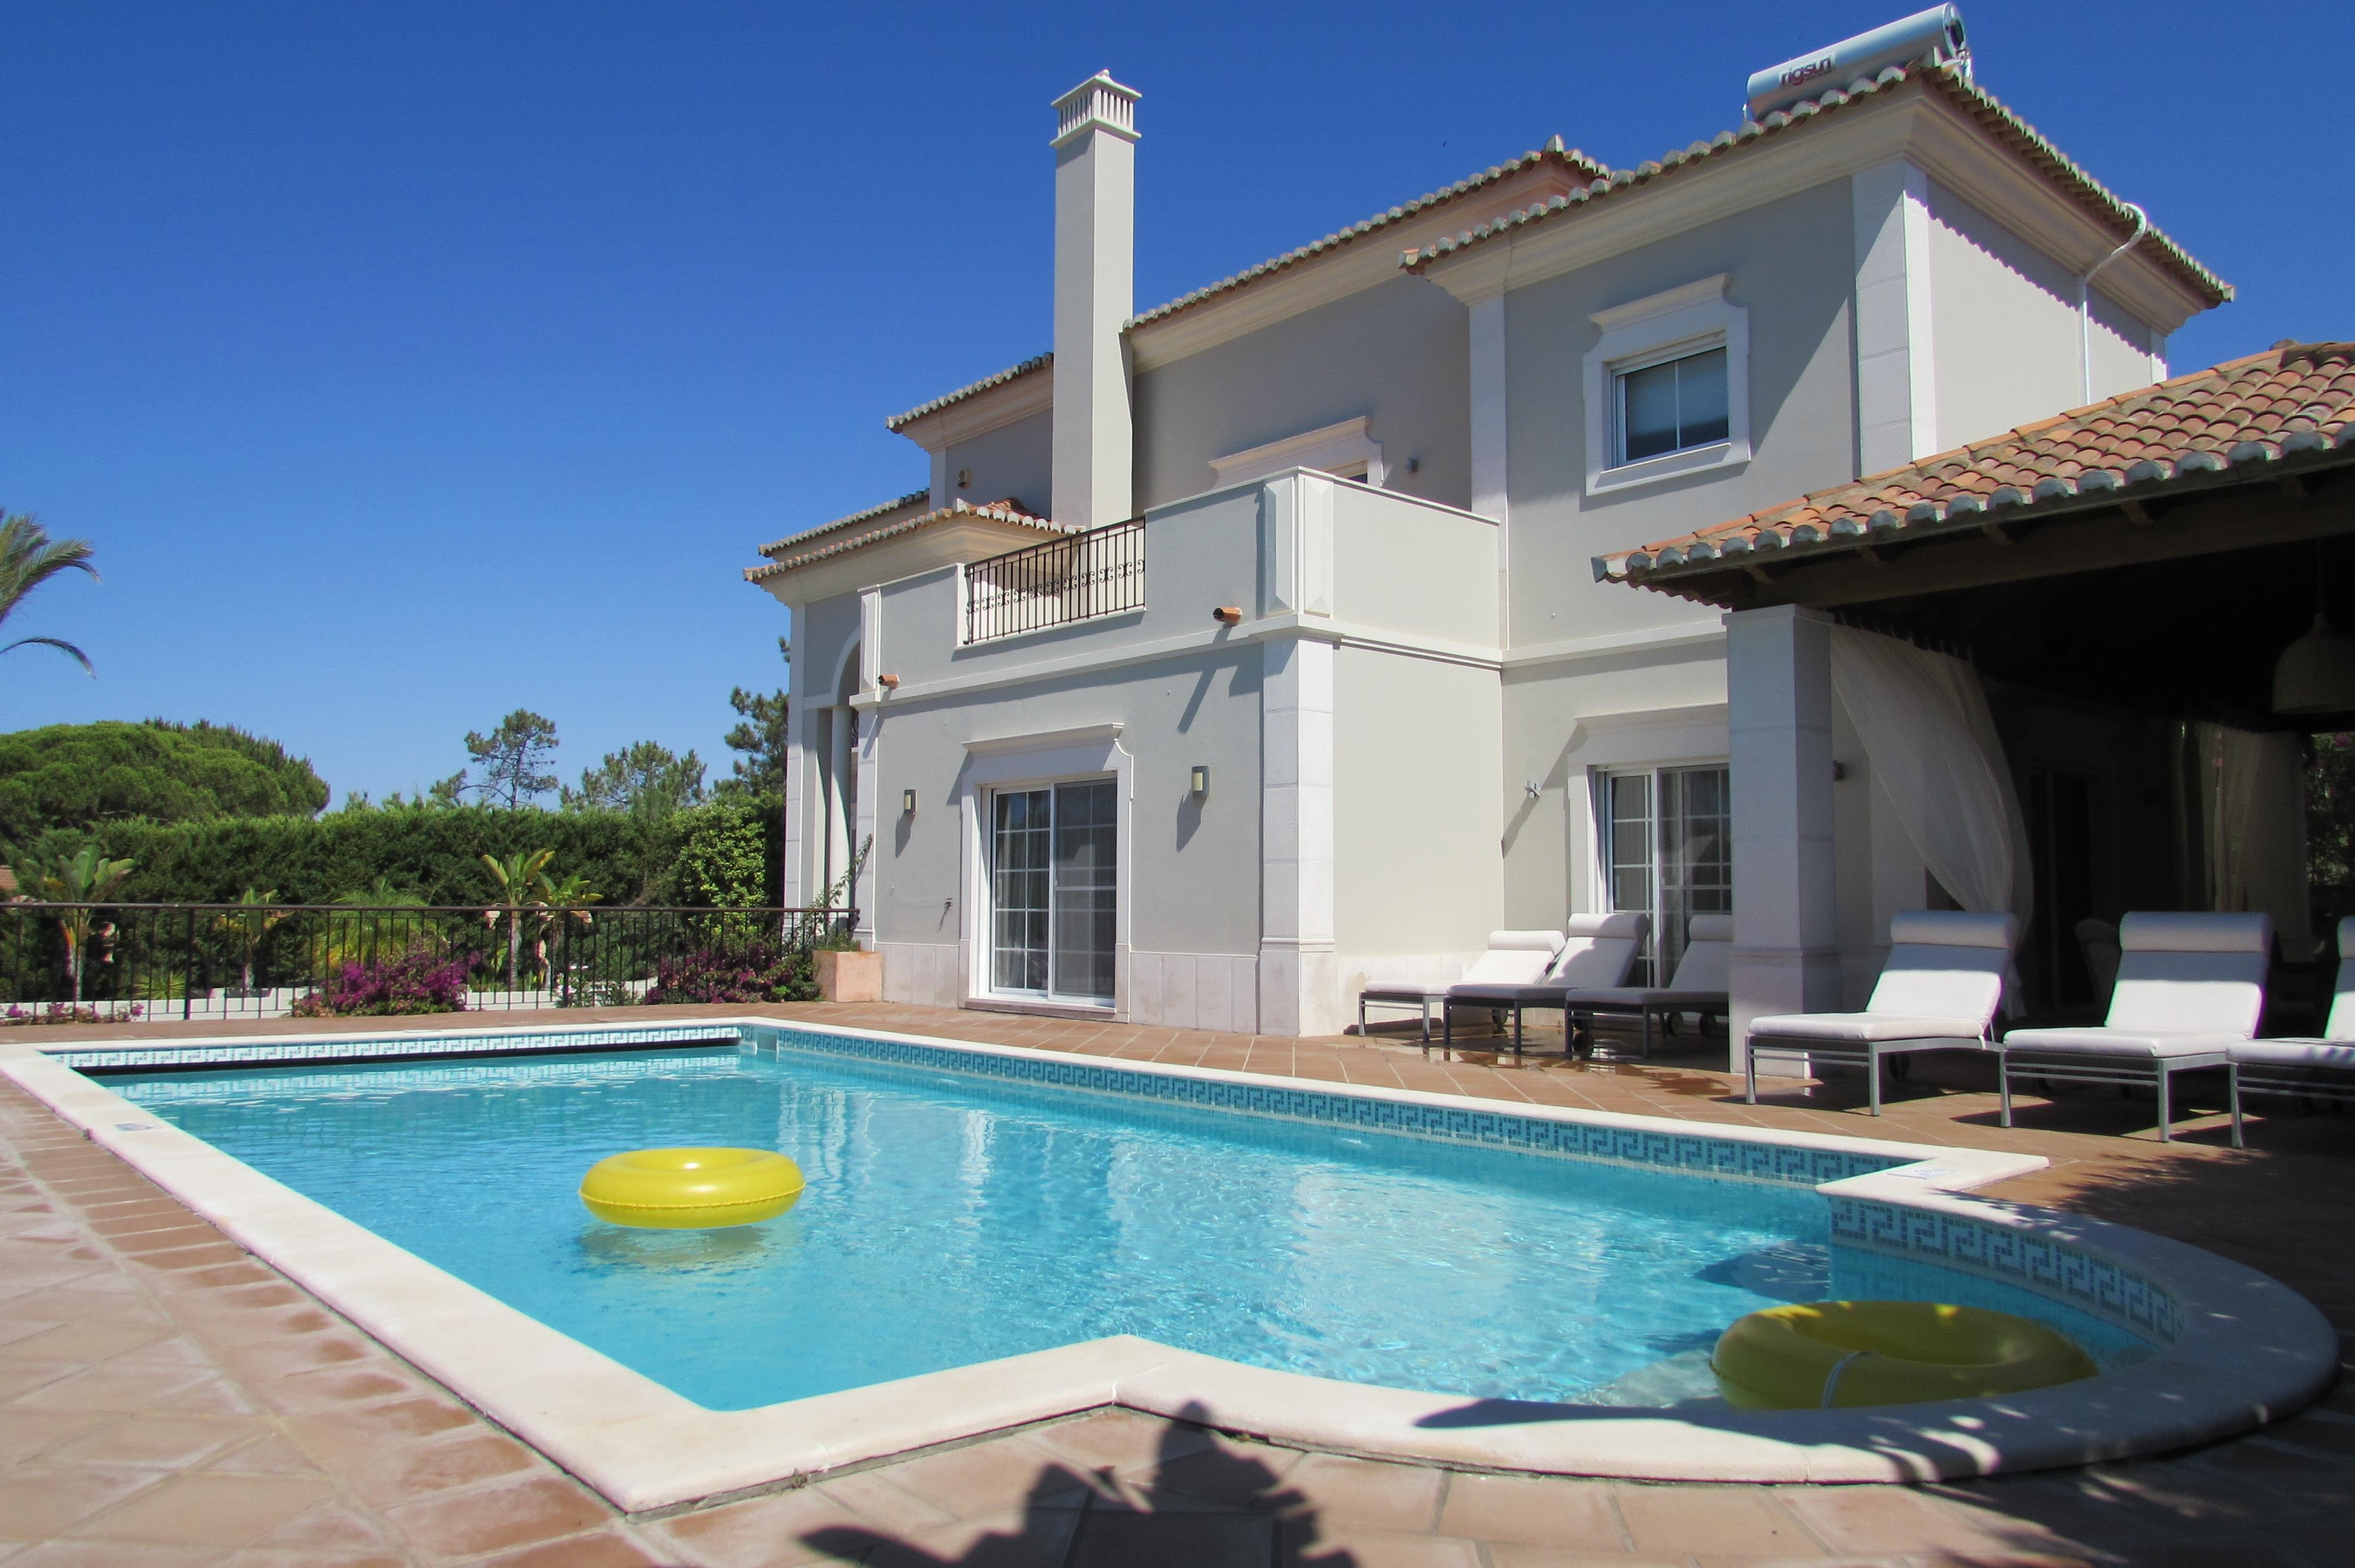 Moradia para Venda às Detached house, 4 bedrooms, for Sale Loule, Algarve, Portugal